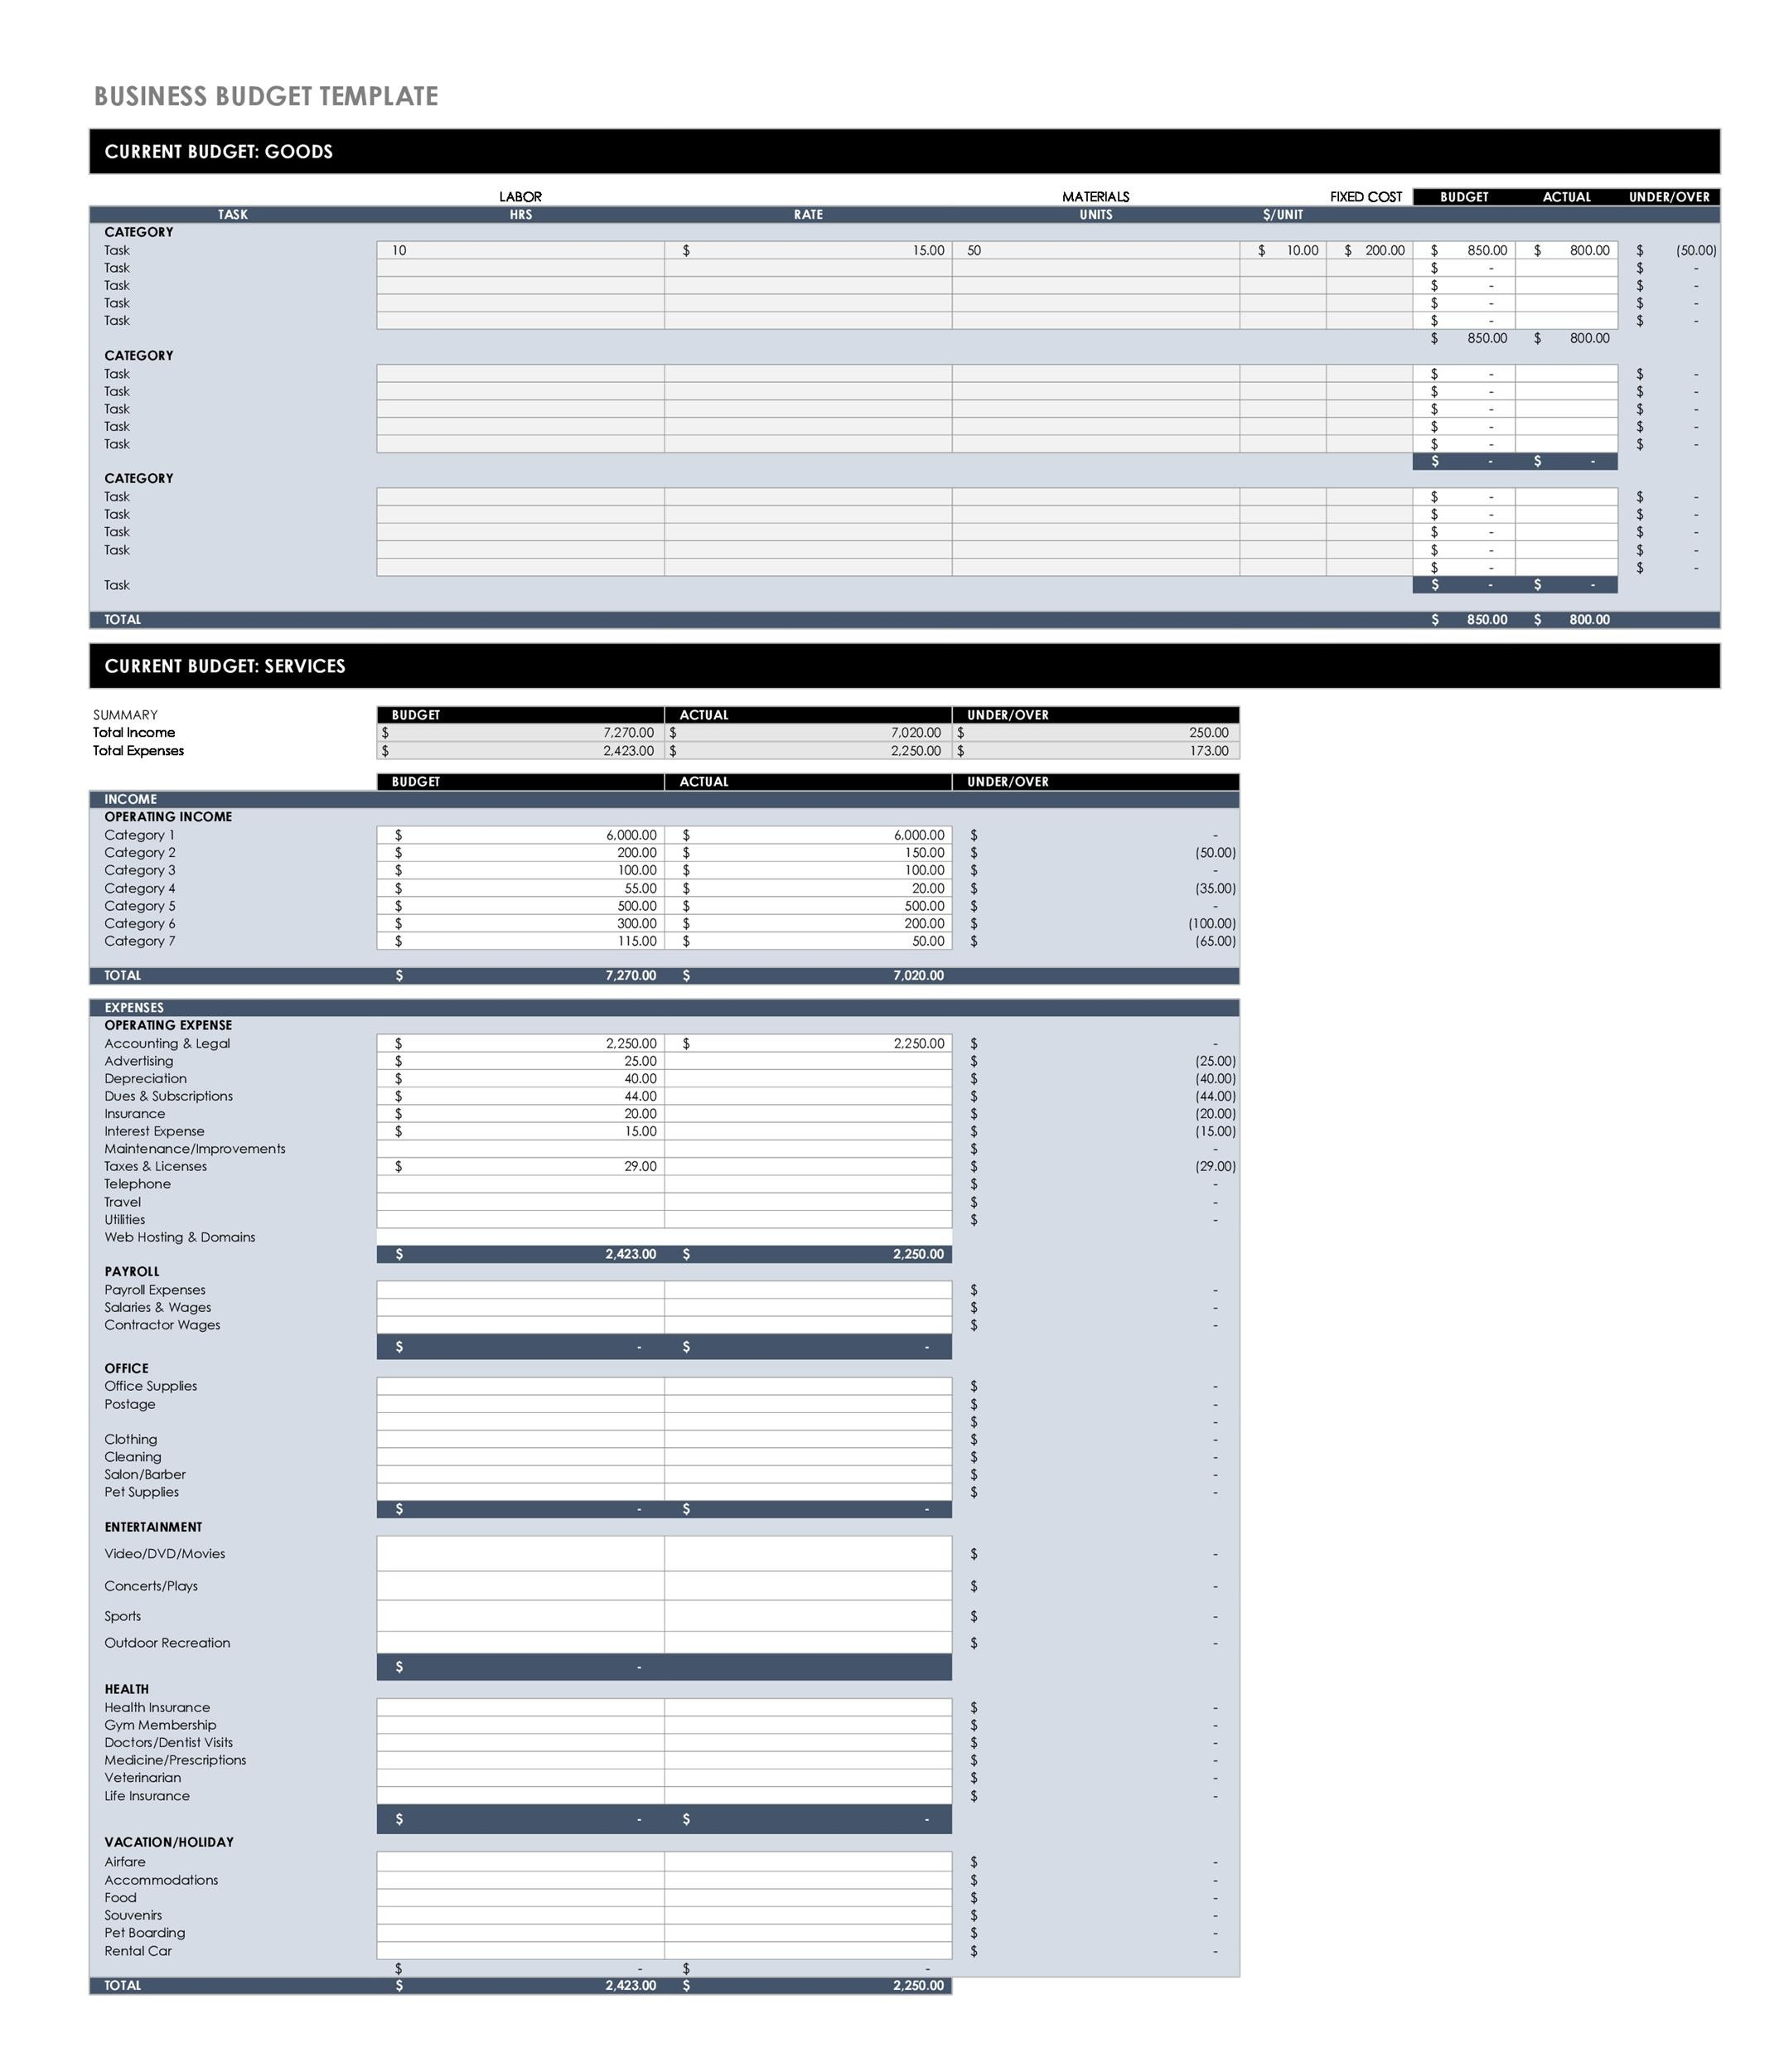 Free business budget template 02